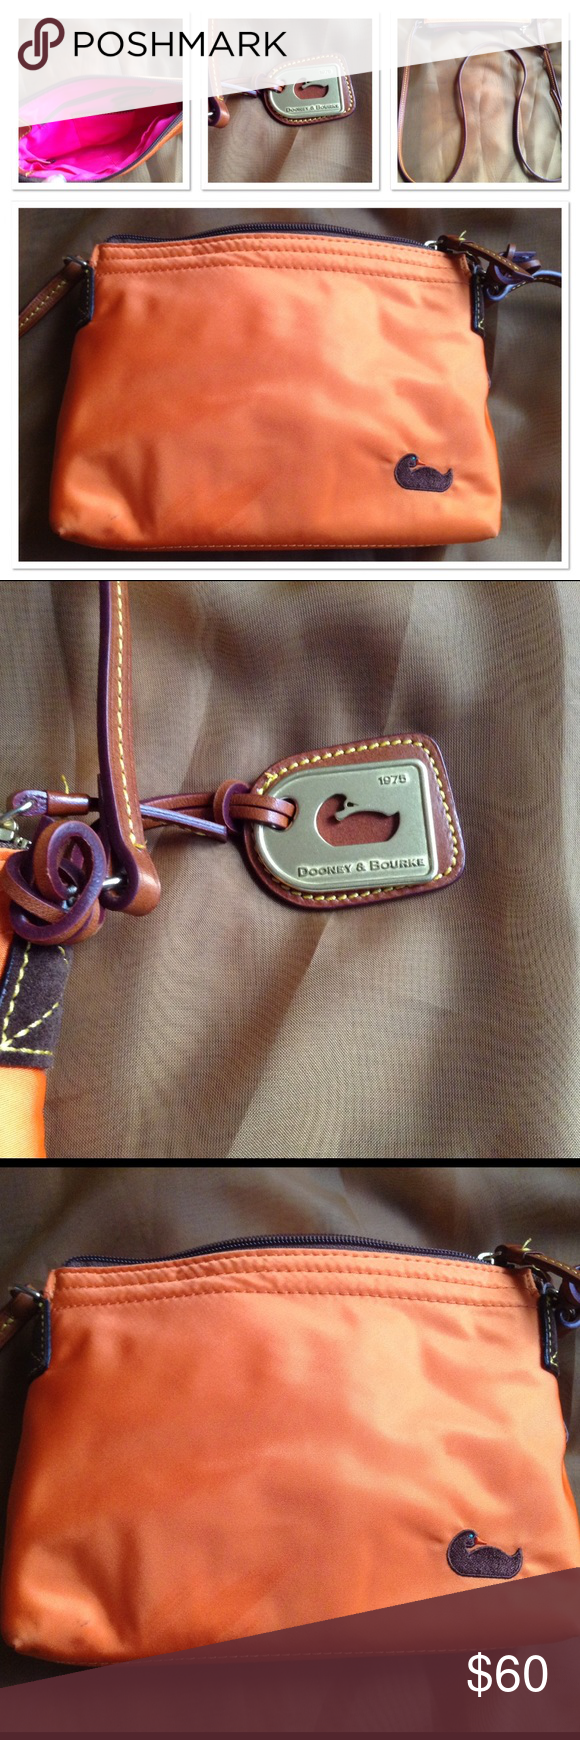 Dooney & Bourke Crossover bag, long straps,, used only twice, bright color, inside new no stains, picture num. 4 was extremely zoomed in has a small mark not sure how, looks like a pen mark ( able to be removed) Dooney & Bourke Bags Crossbody Bags